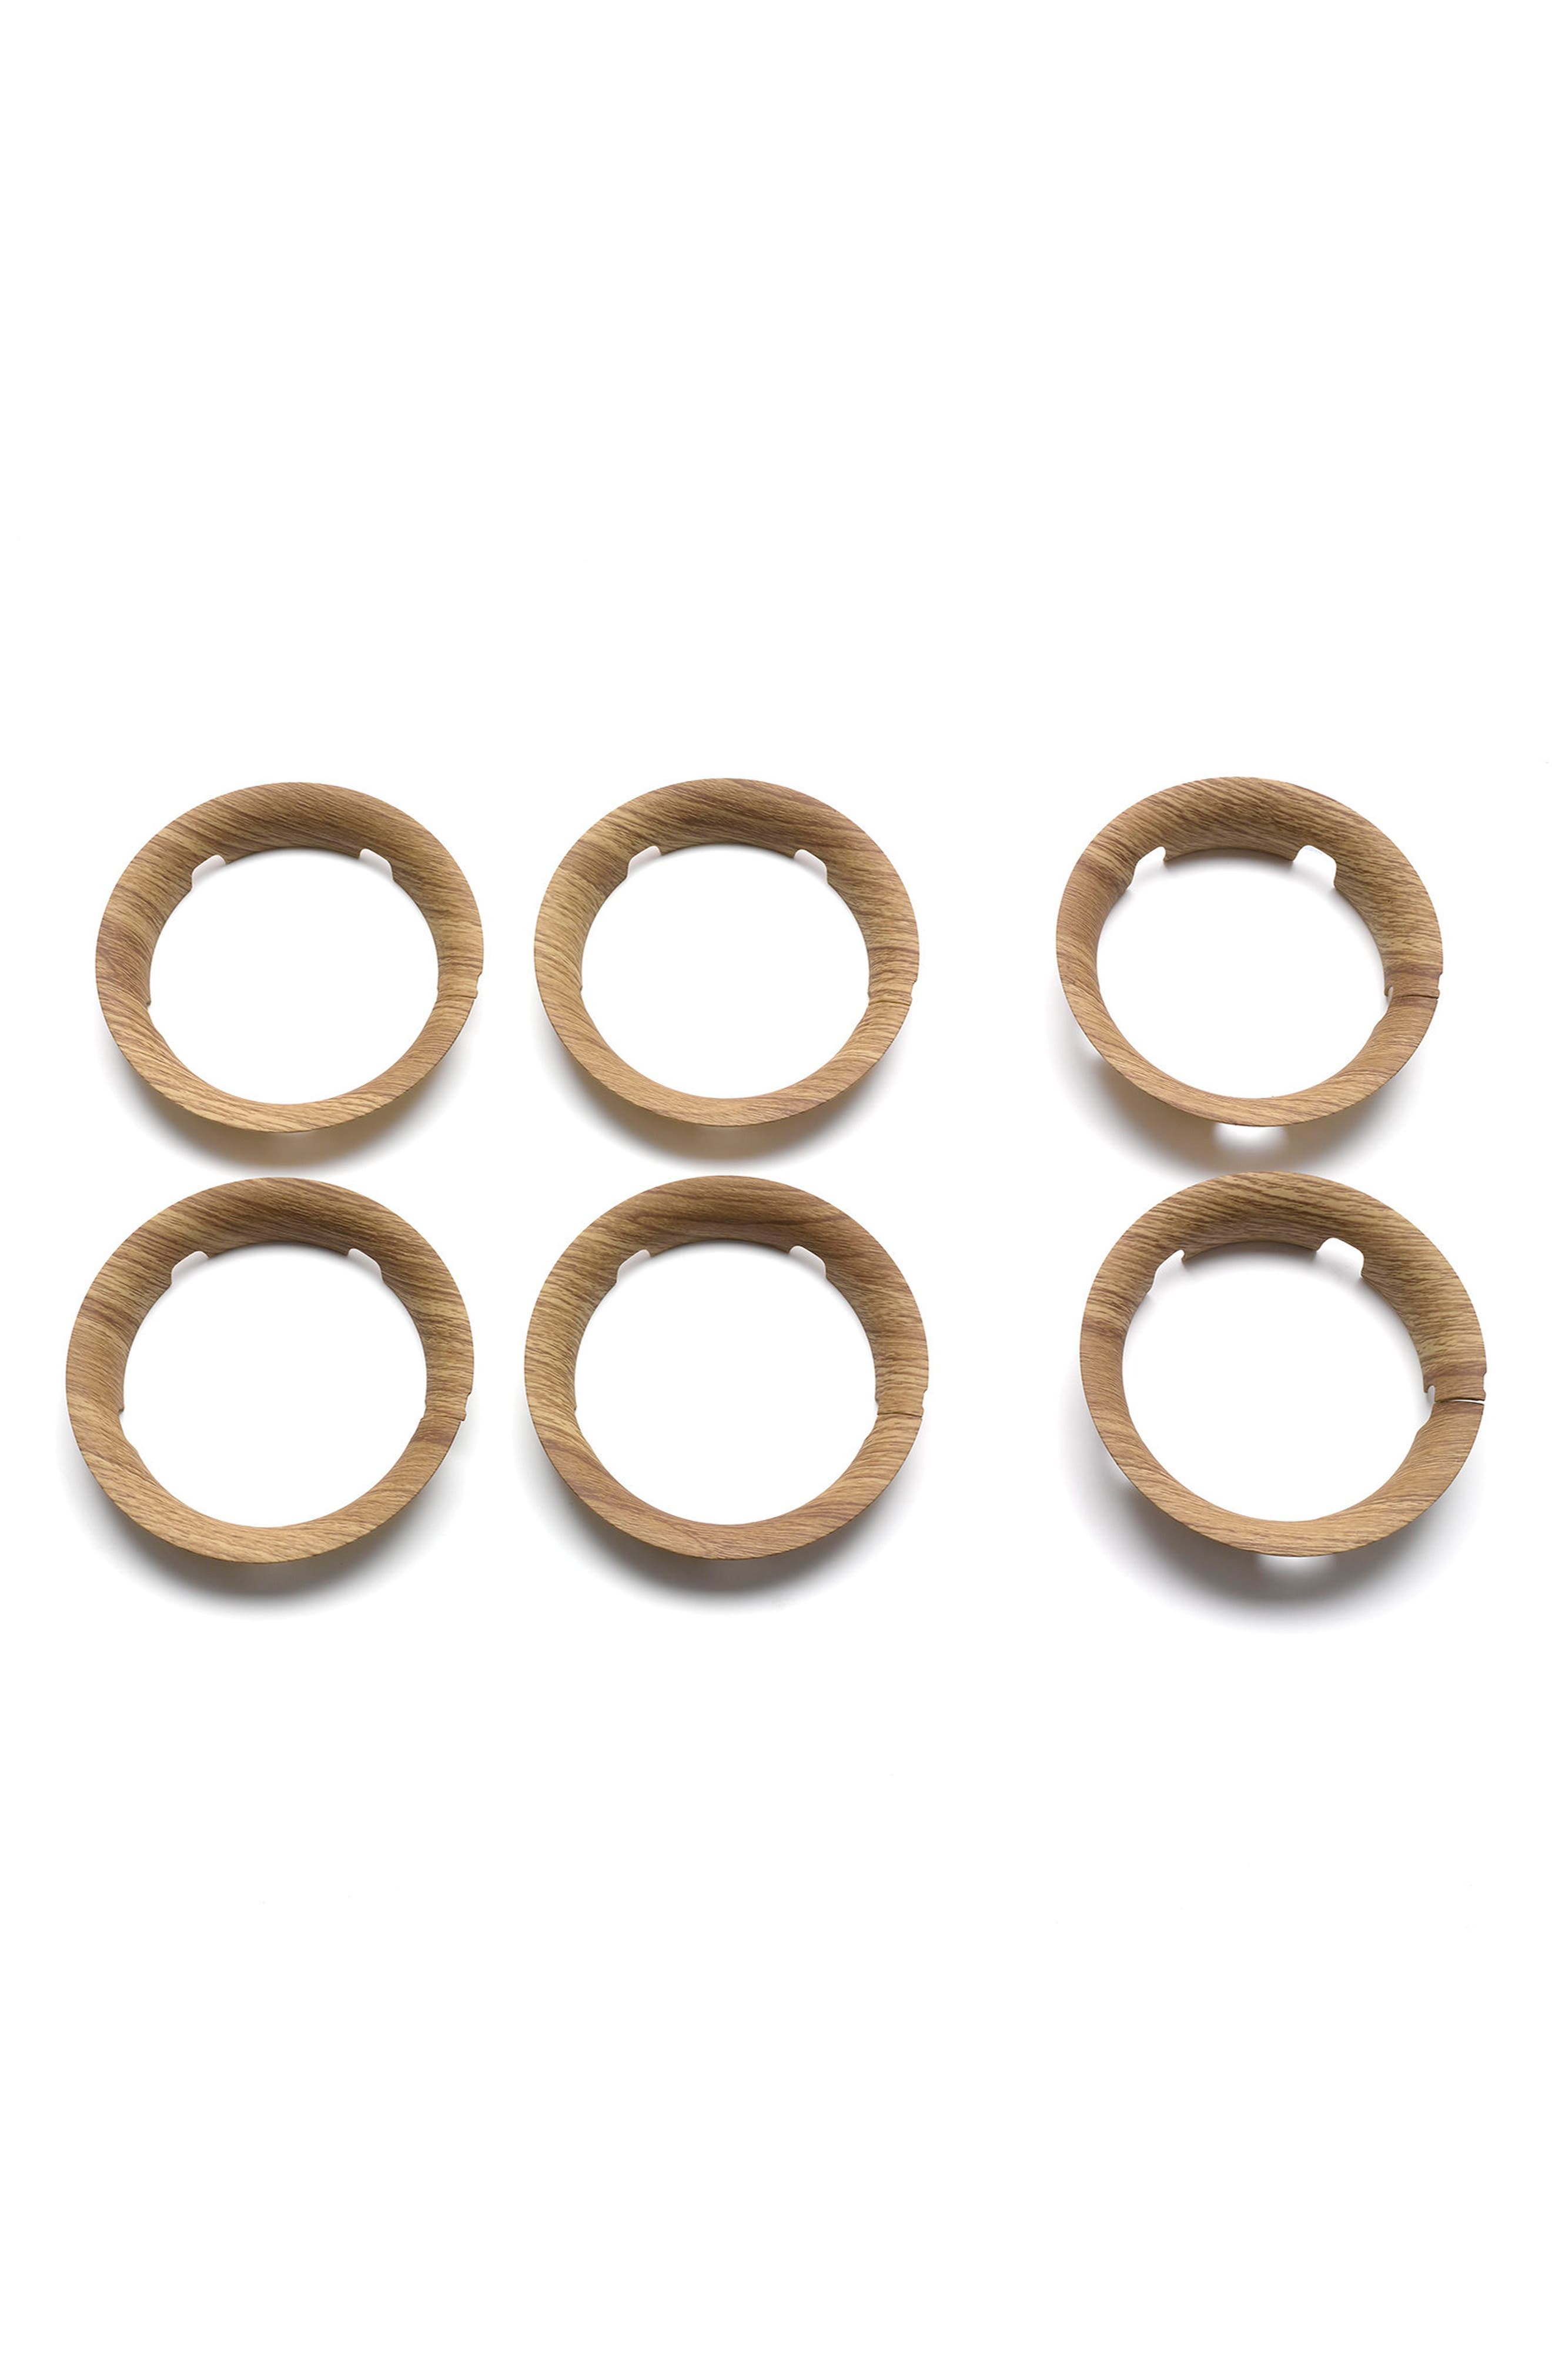 Set of Wheel Caps for Bugaboo Bee5 Stroller,                             Main thumbnail 1, color,                             Wood